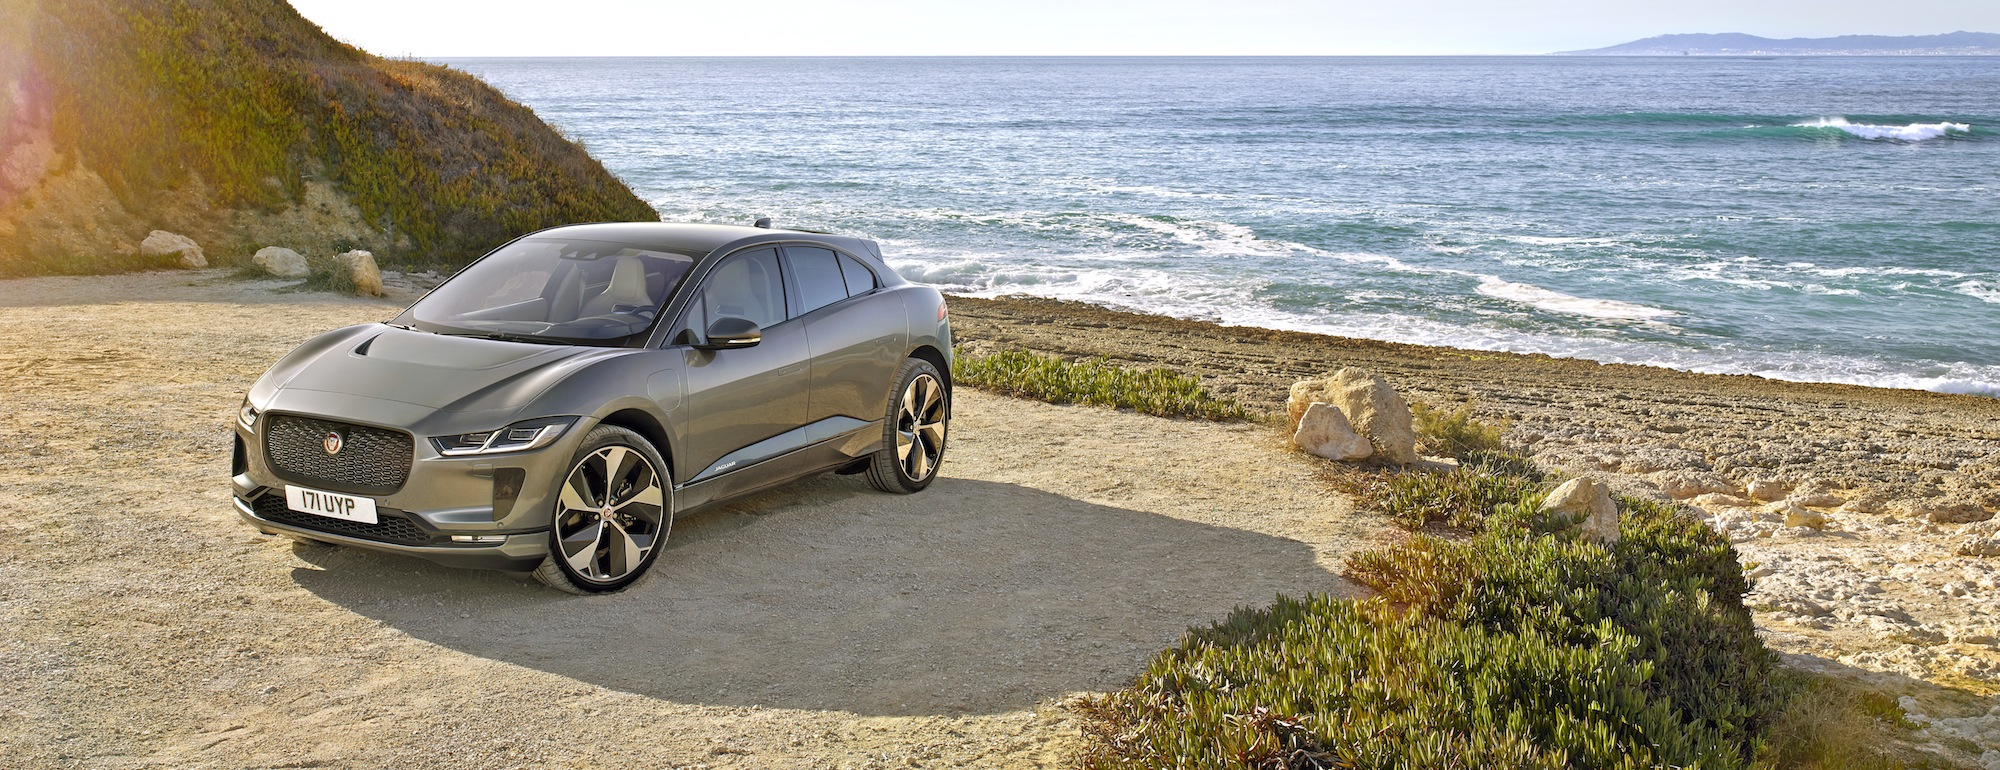 2019 Jaguar I-PACE: Finally, There Is A Tesla Competitor